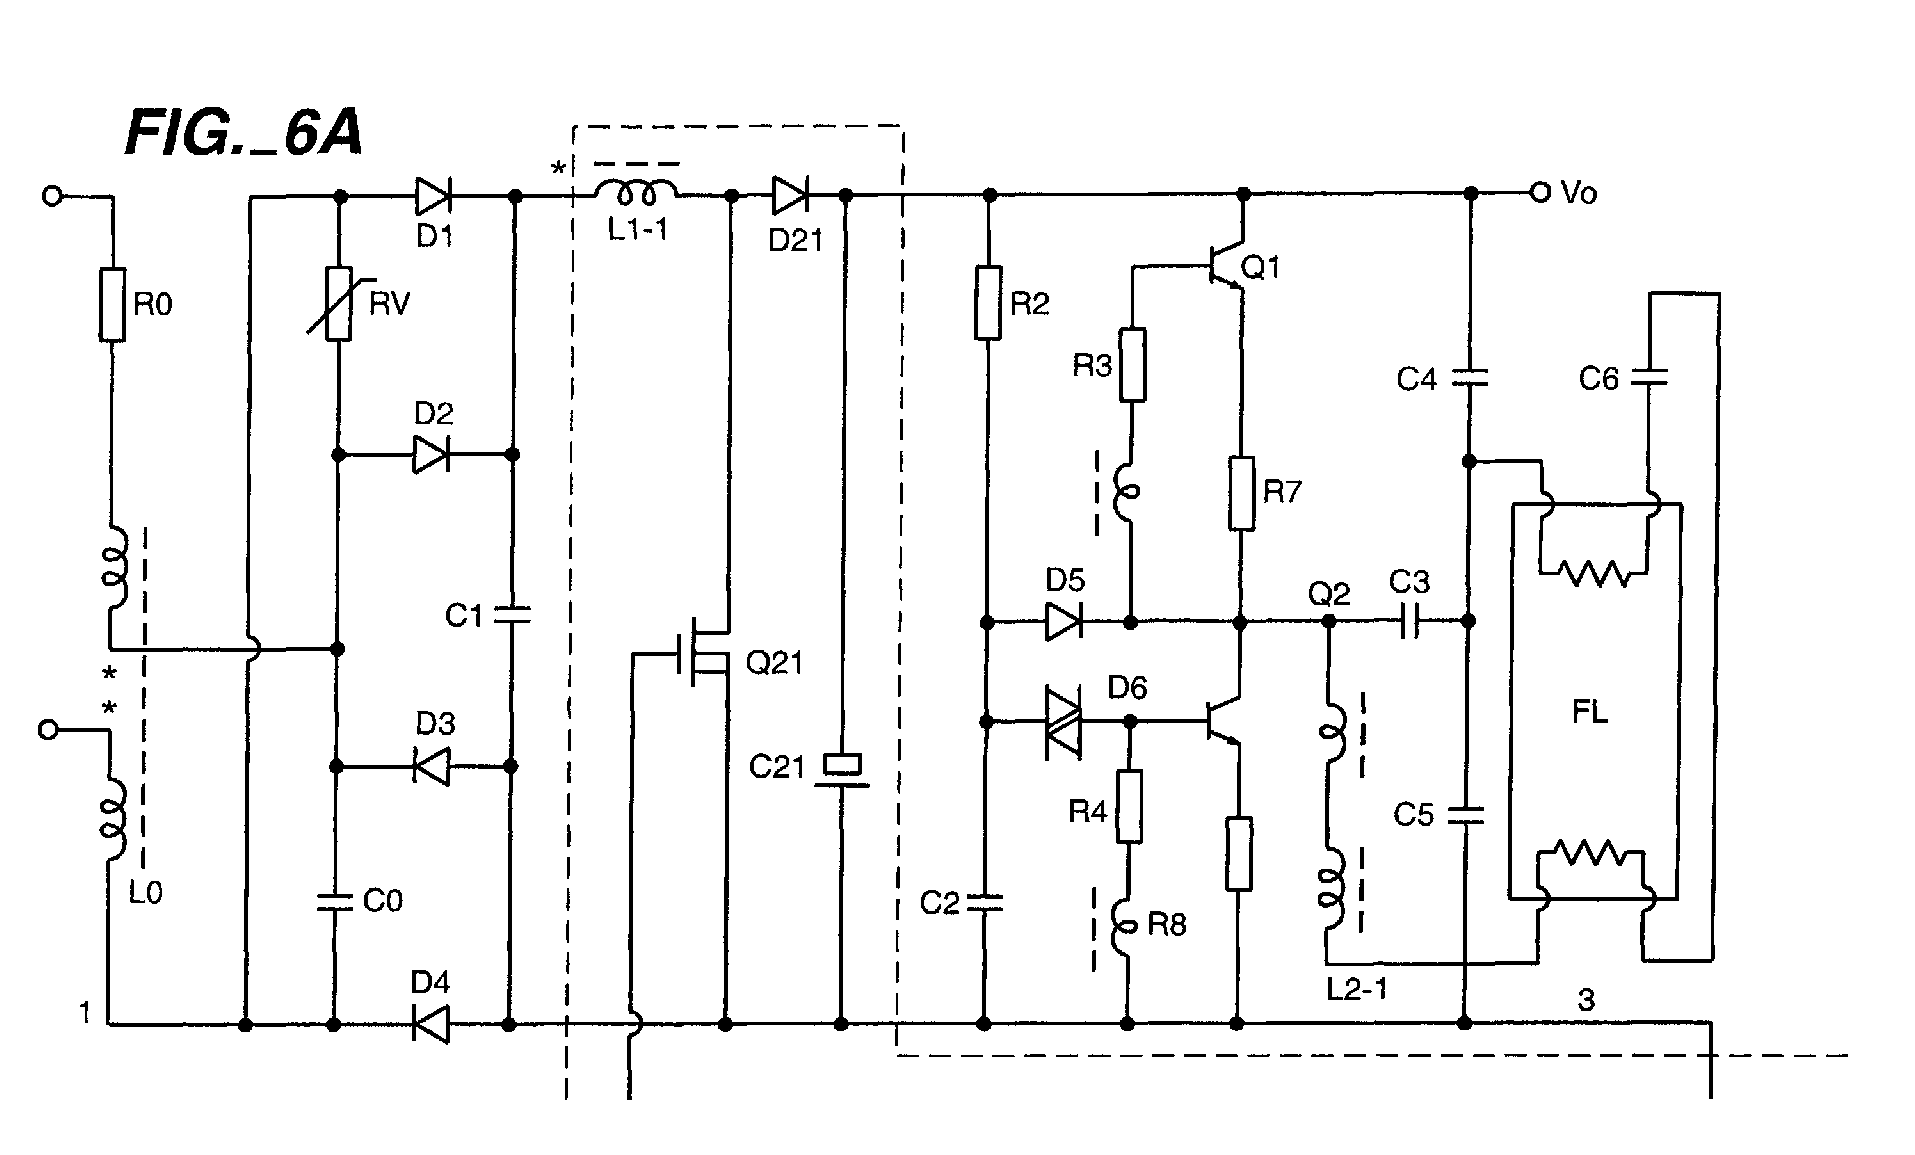 ... fluorescent lamp electronic ballast circuit diagram